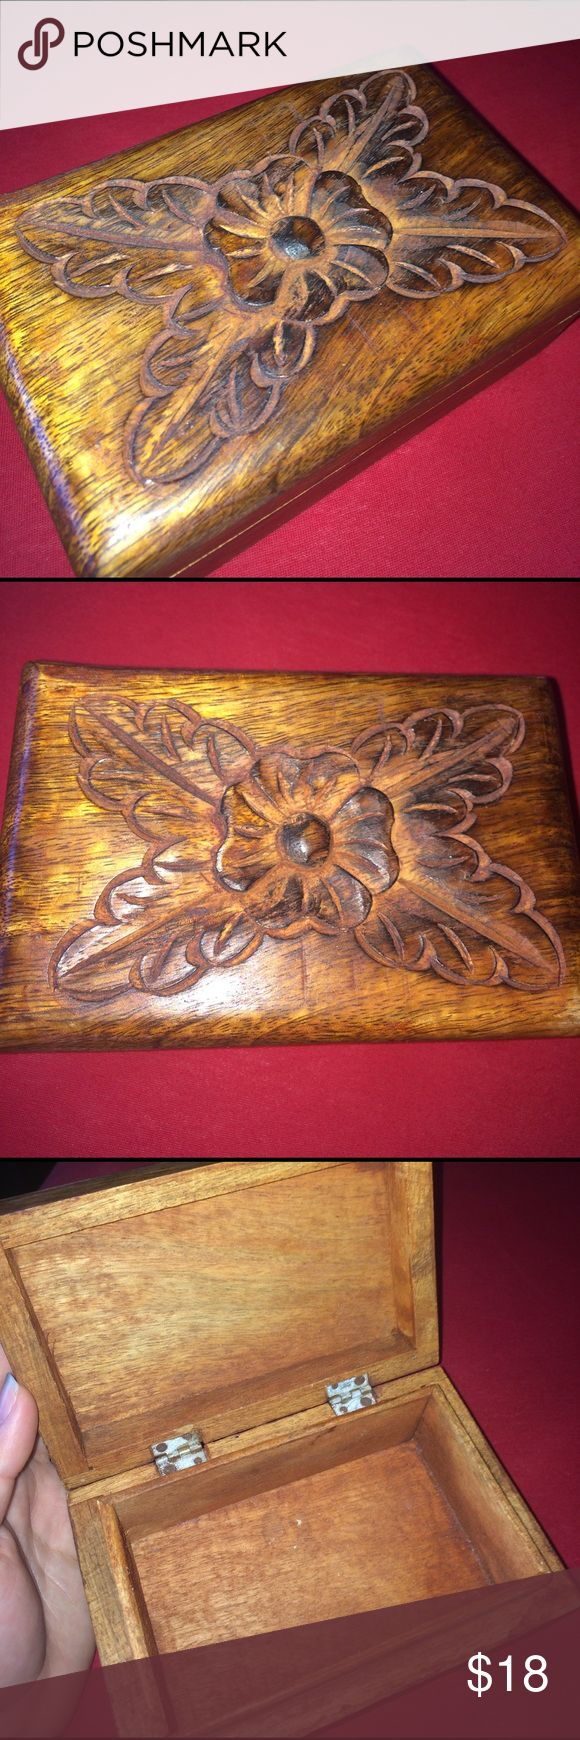 Wooden Engraved Jewelry Box Wooden Jewelry Box. Adorable! Jewelry Earrings